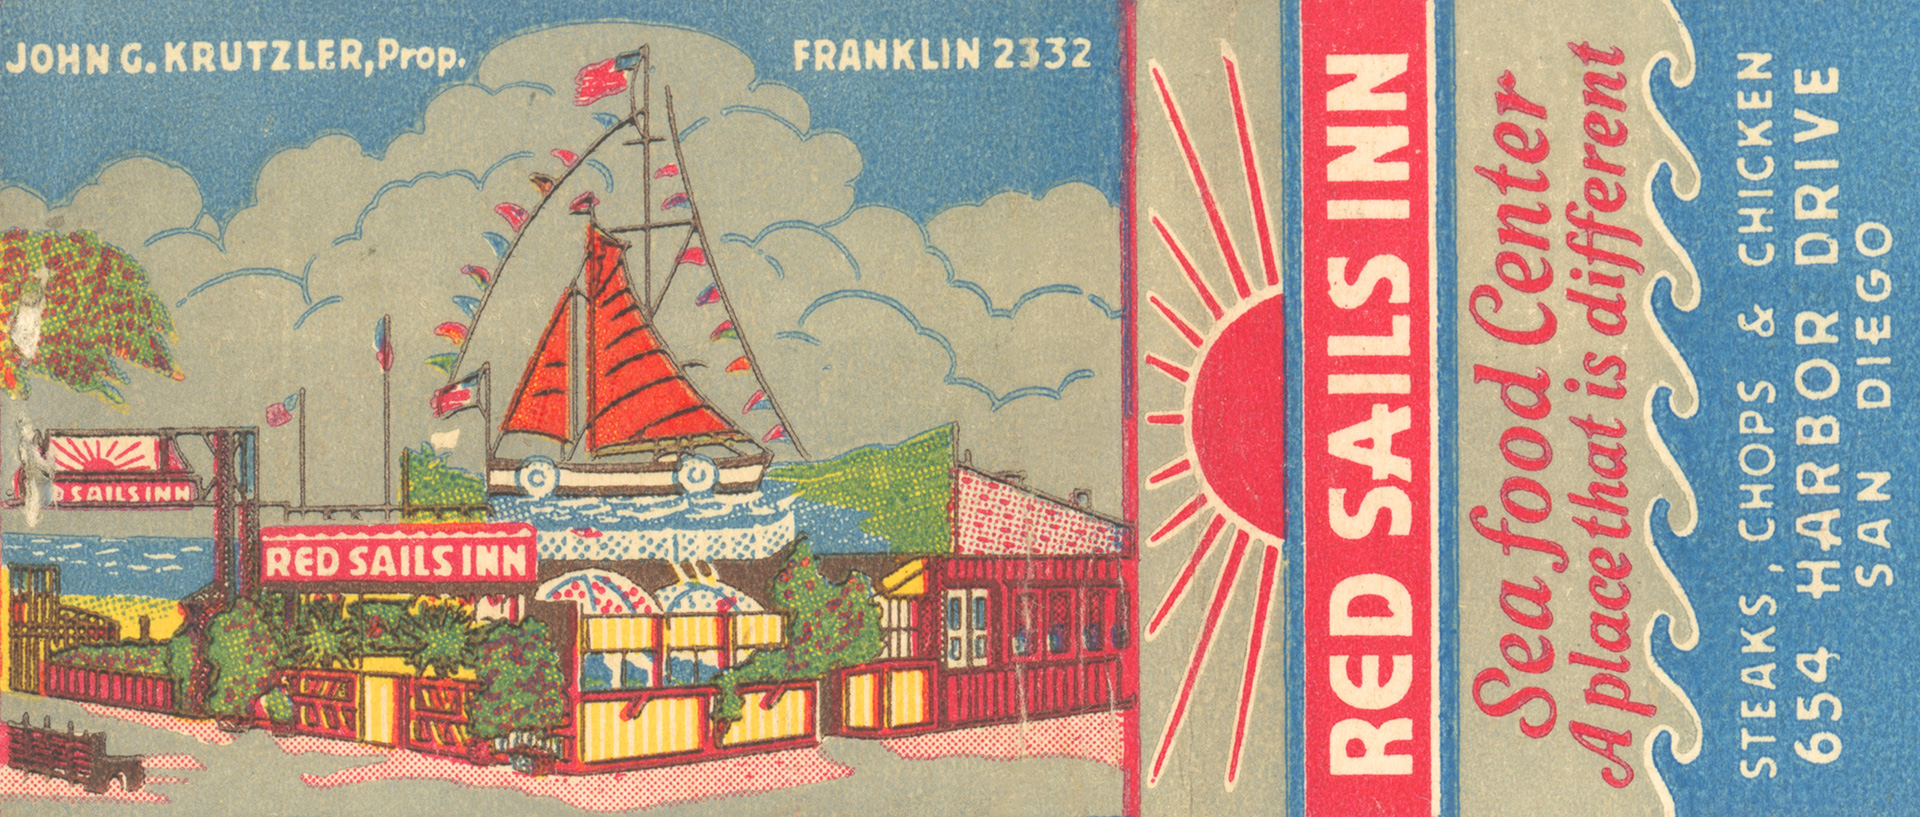 Red Sails Inn matchbook, c1943